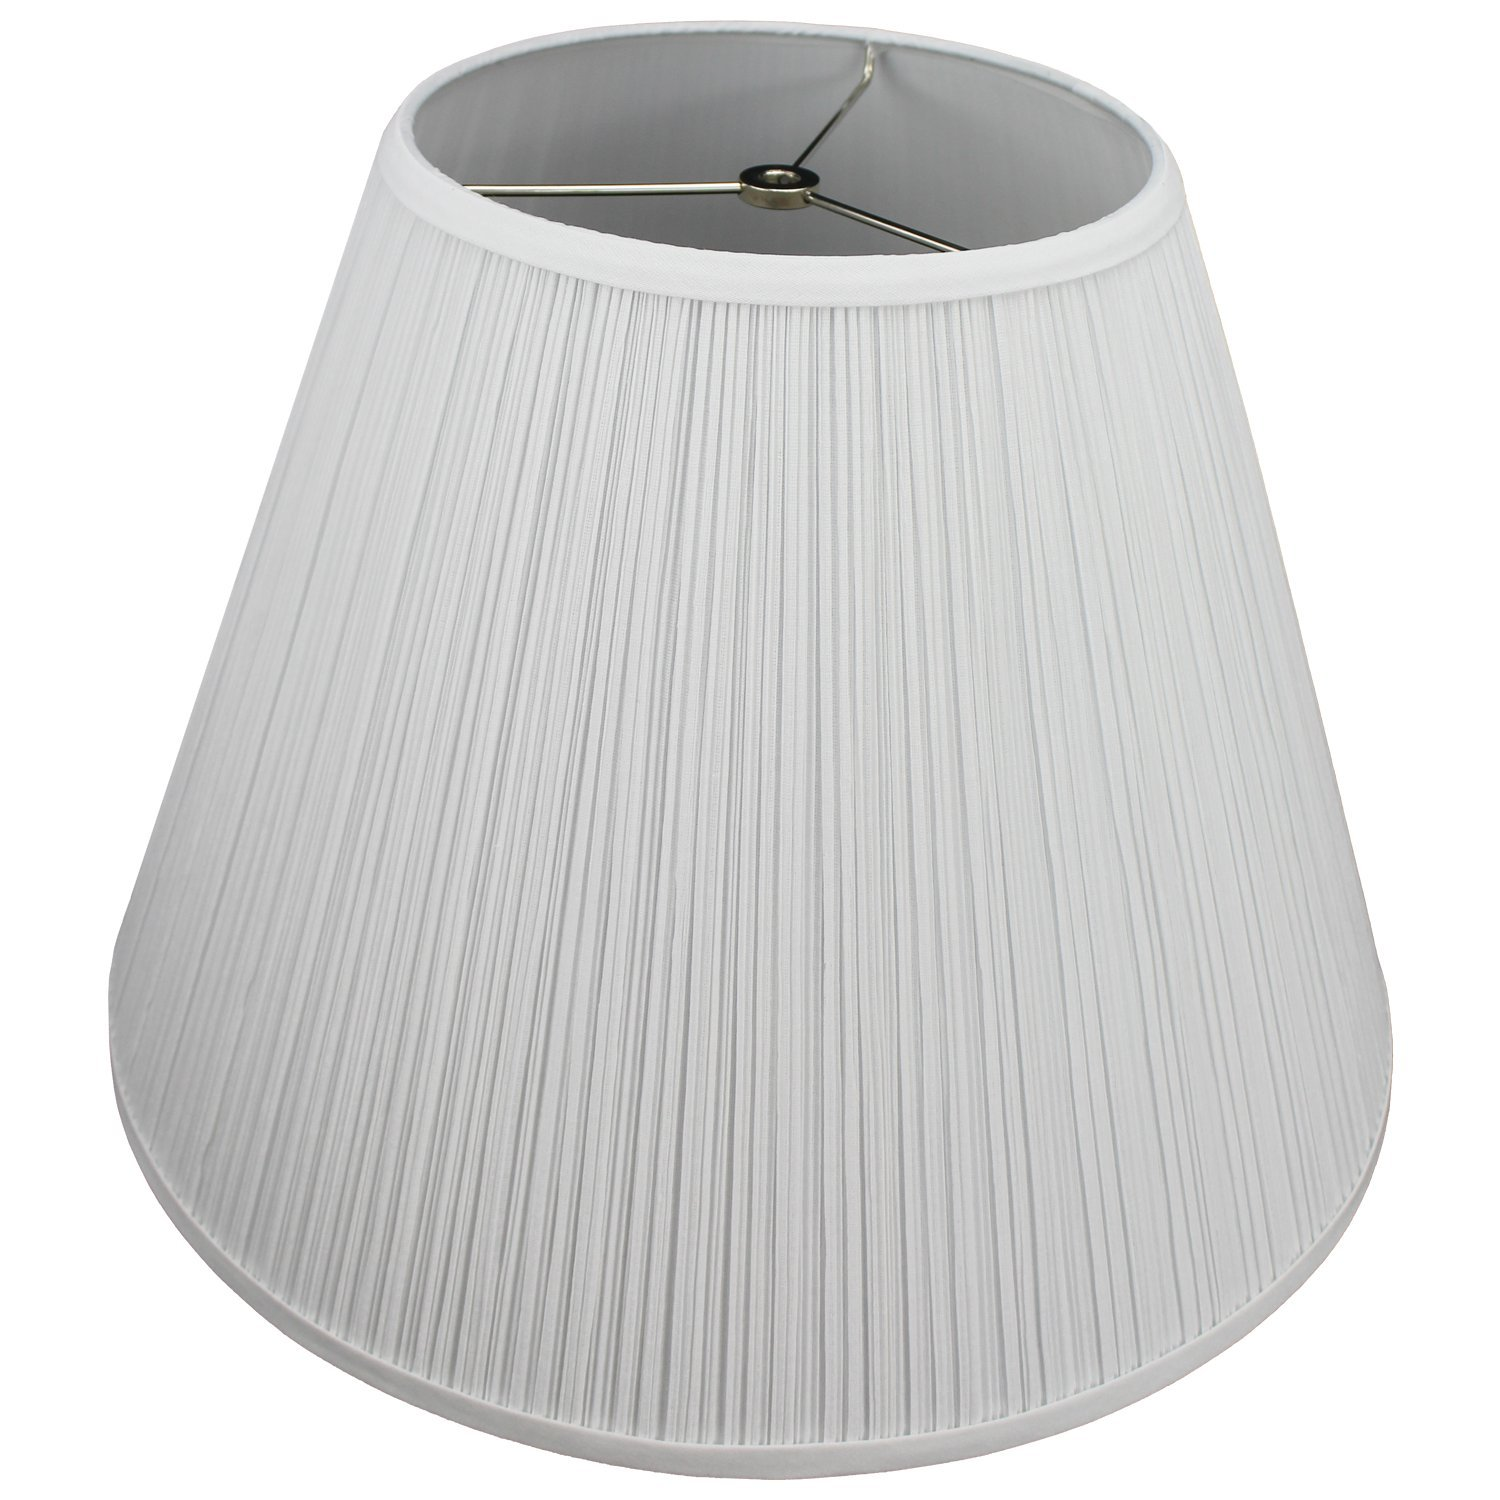 FenchelShades.com Lampshade 9'' Top Diameter x 18'' Bottom Diameter x 13'' Slant Height with Washer (Spider) Attachment for Lamps with a Harp (Pleated White)